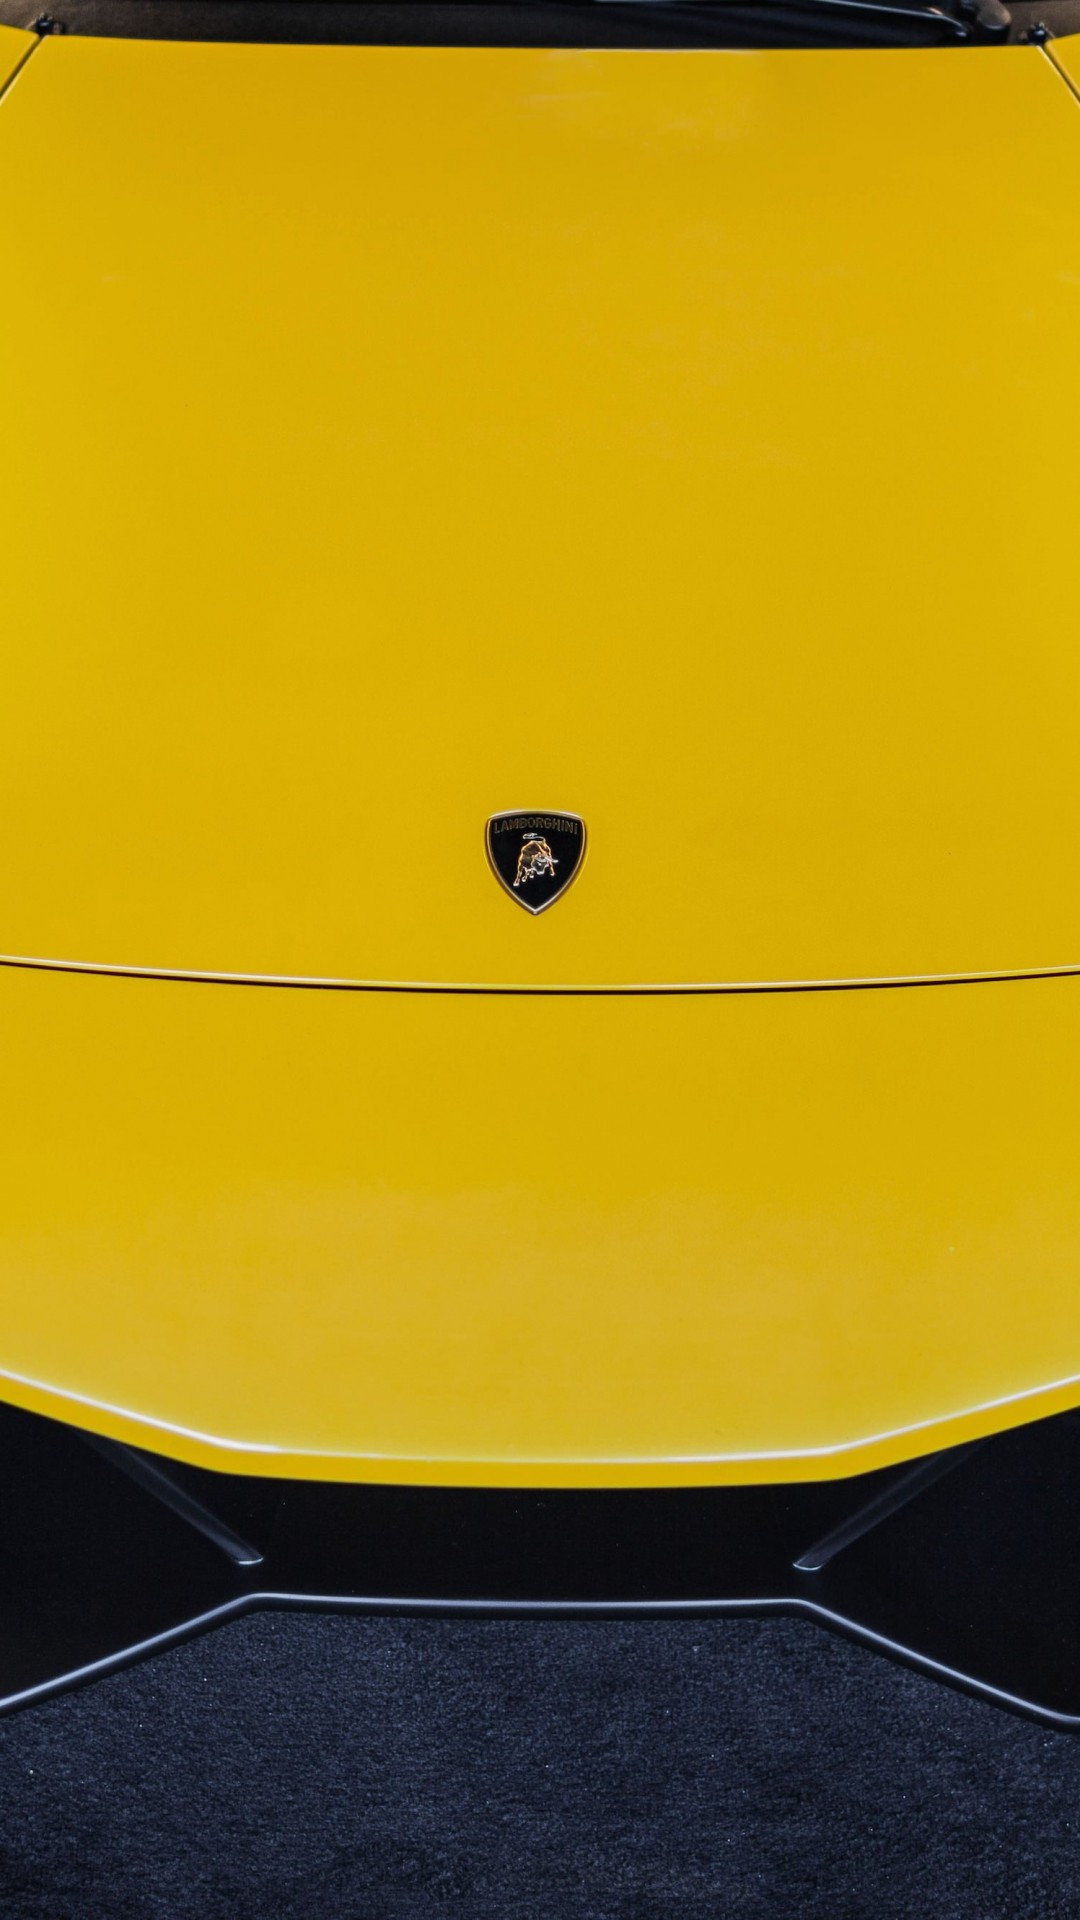 Lamborghini Murcielago LP670 Front Wallpaper for Motorola Moto X